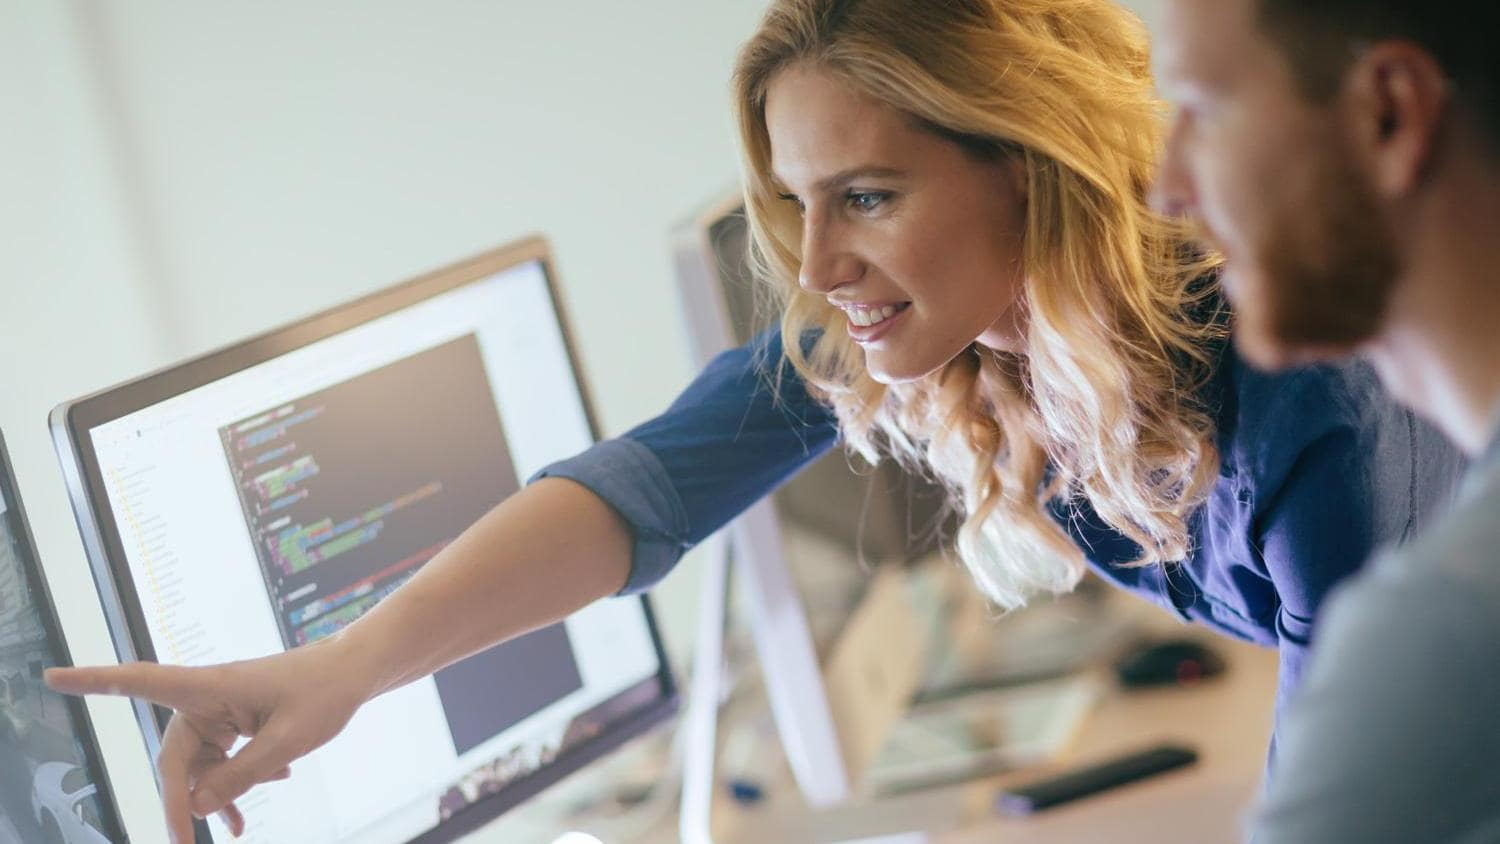 Man Working on Computer and woman pointing on screen